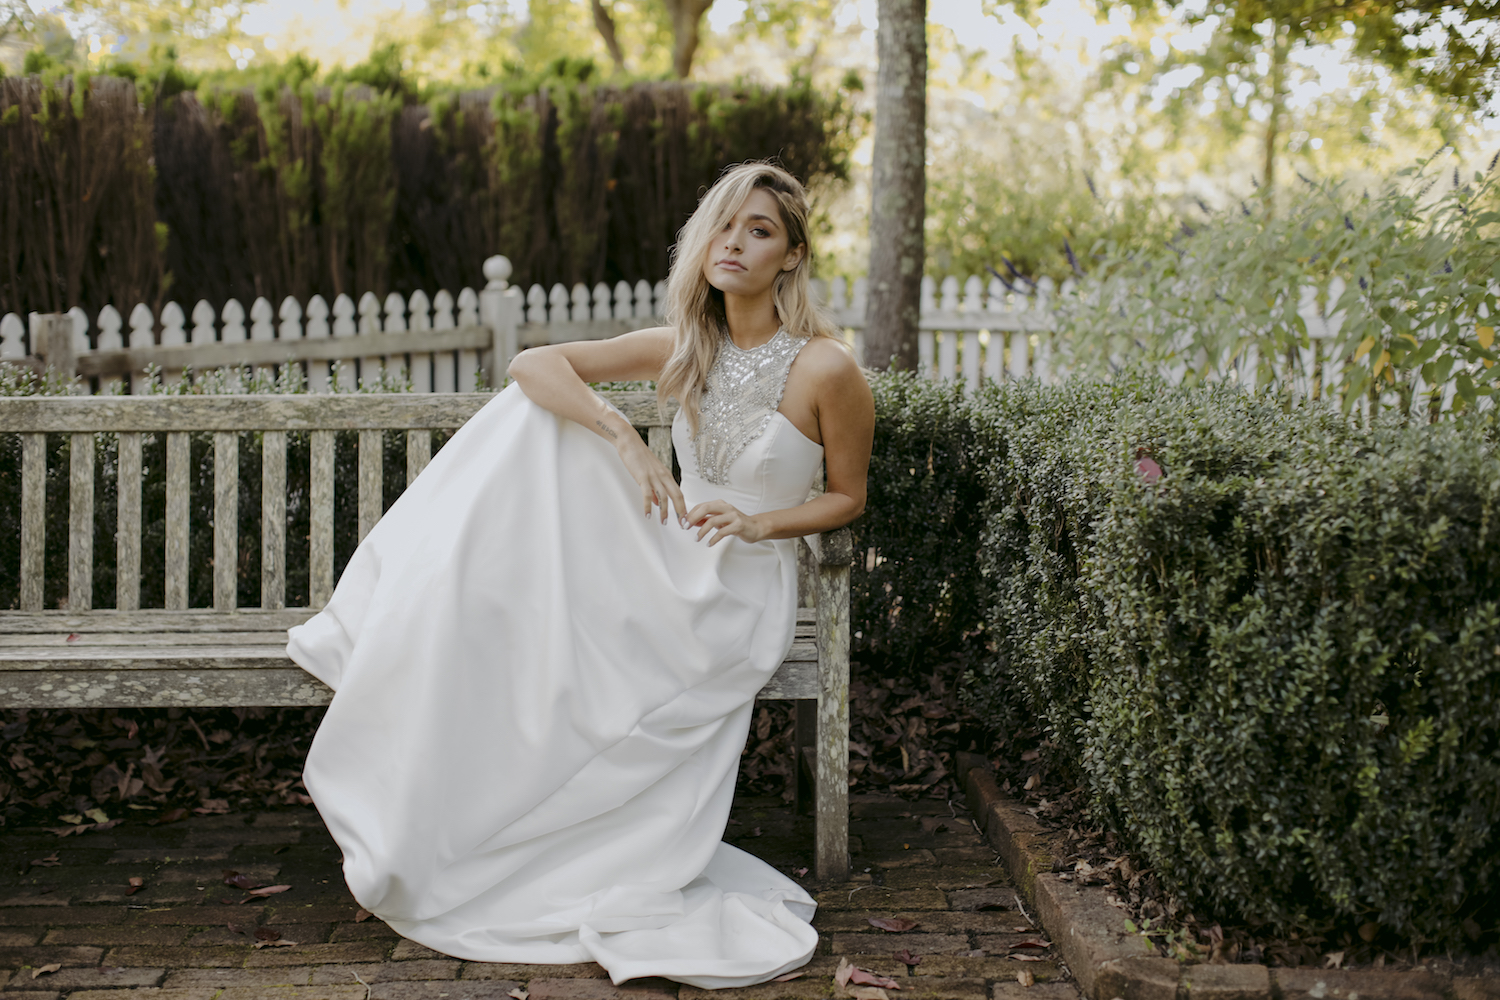 Wedding Dress by Kate McDonald with Creative Direction by Engaged Creative